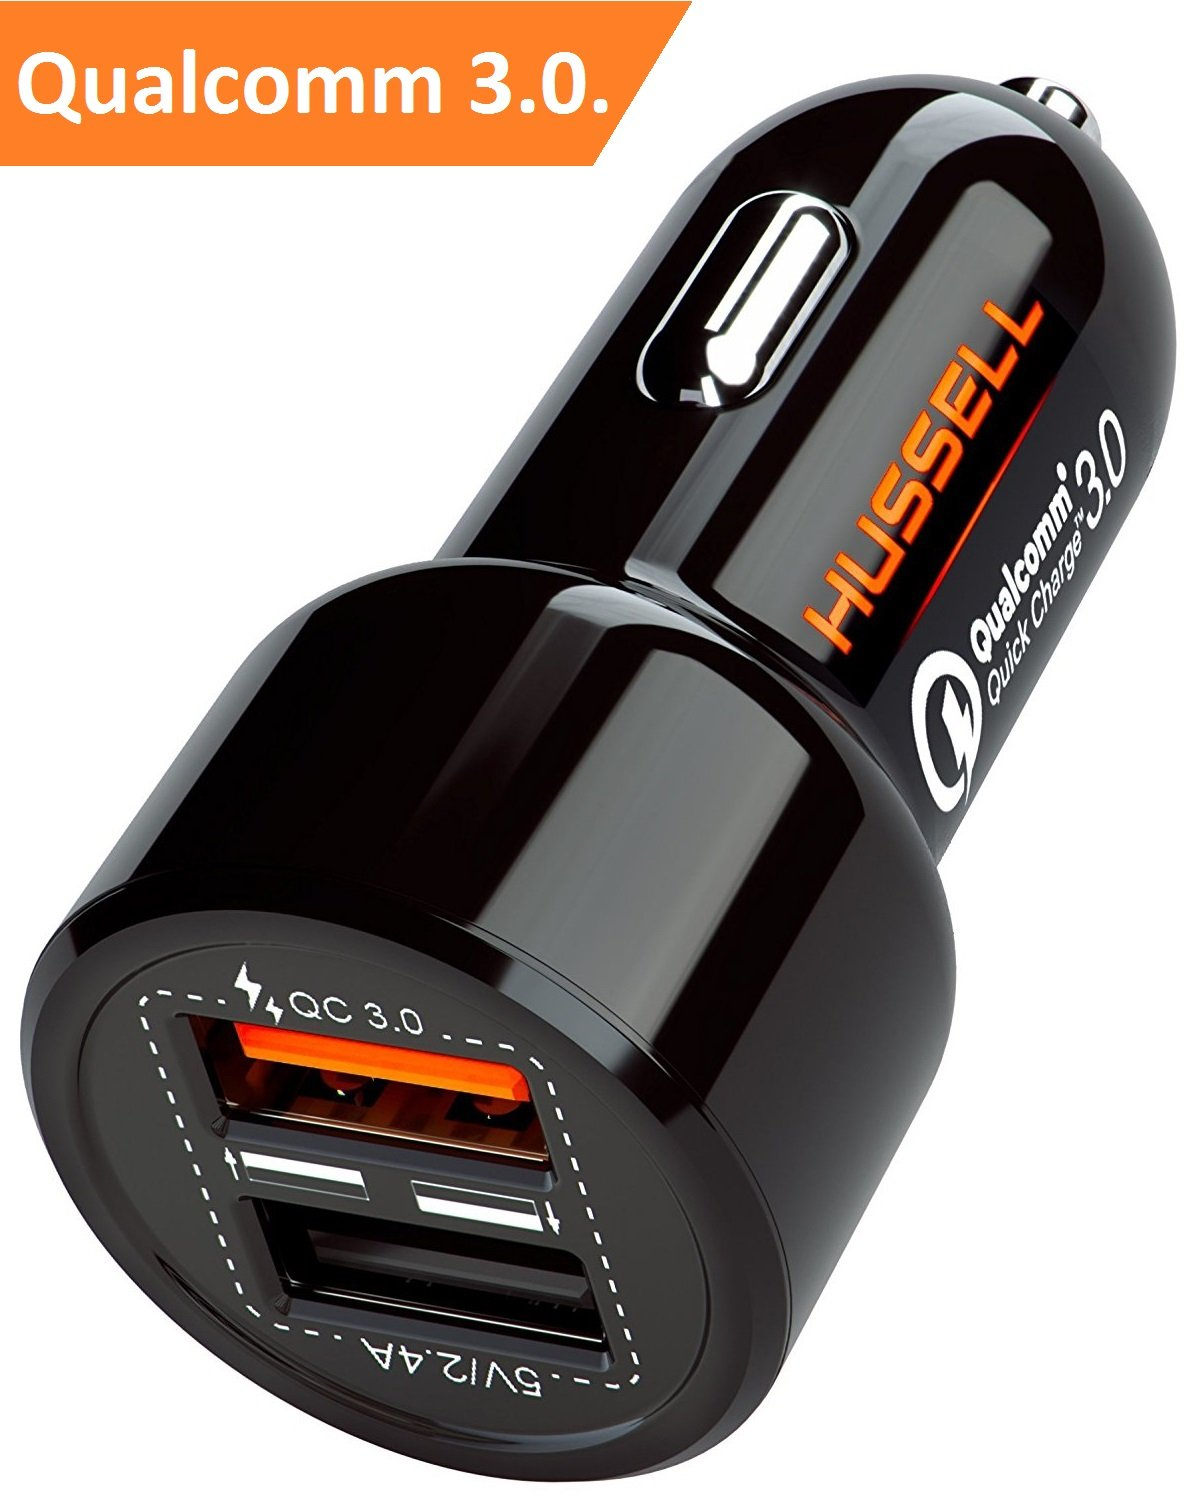 2018 HUSSELL Car Charger. Quick Charge 3.0 + 2.4A Smart IC Dual USB Car Charger Adapter for any iOS or Android Devices: Samsung and More. Car Adapter. Car Charger Adapter. Car Charger USB